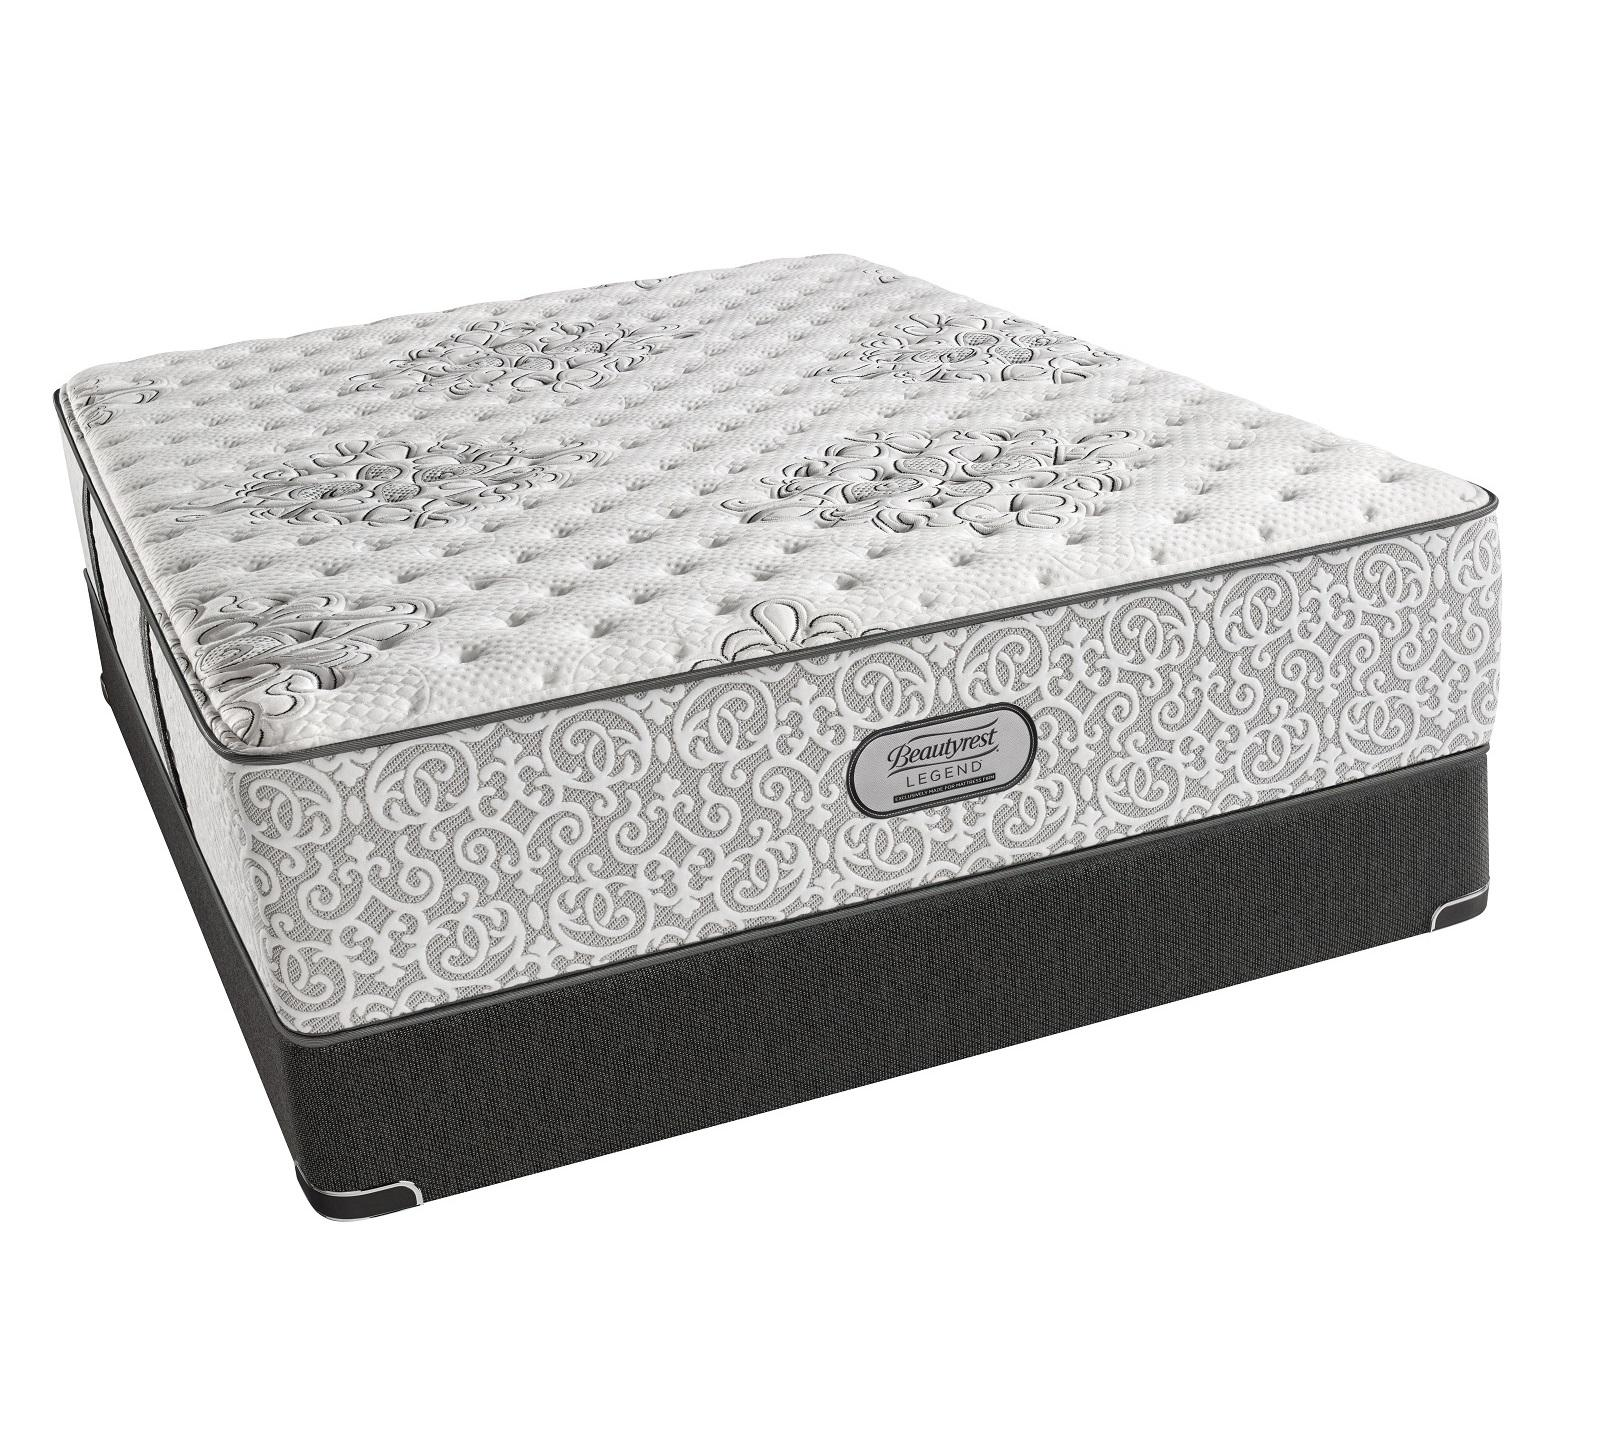 silo beauty rest beautyrest mattress extra product mooradians firm platinum pl simmons claudia